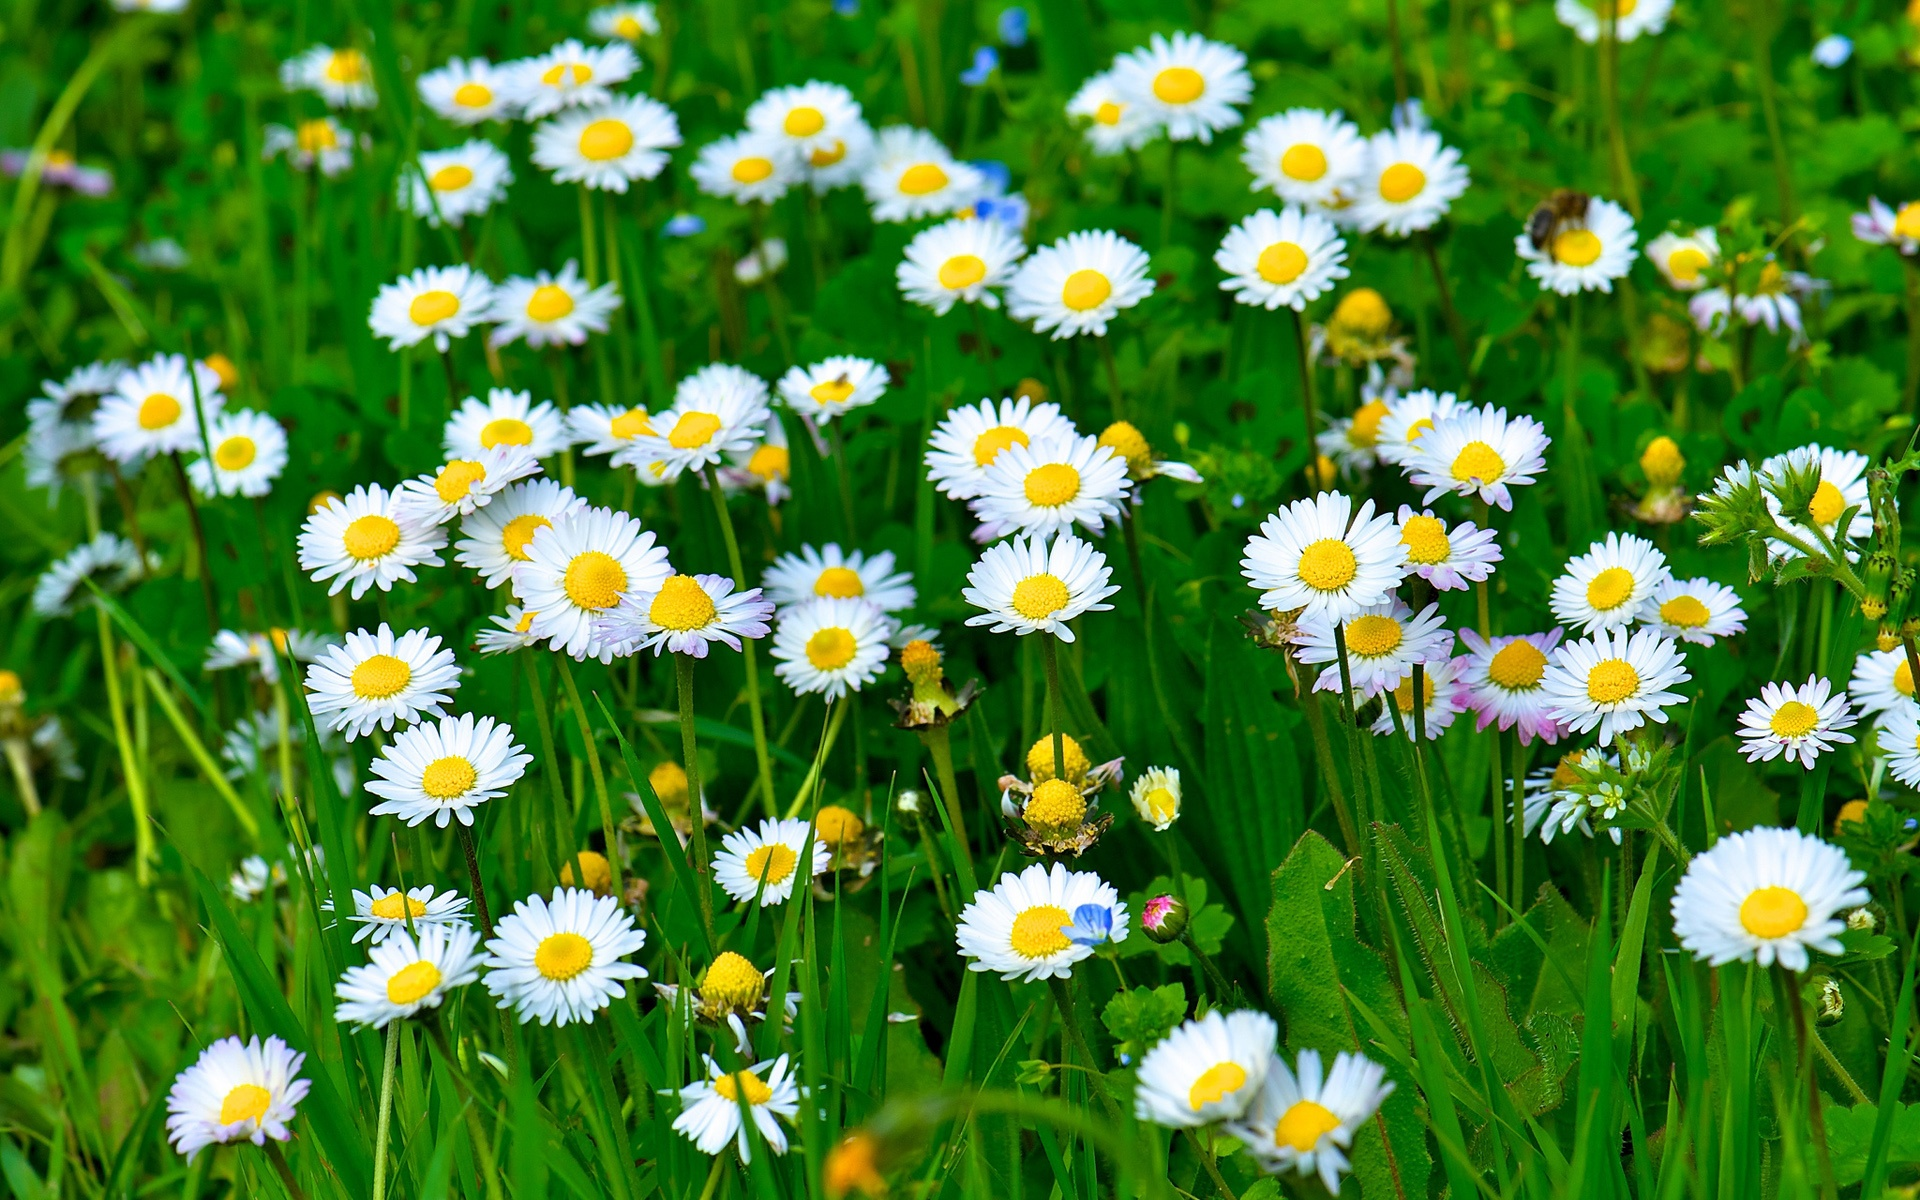 Wallpaper white daisy flowers grass leaves green 1920x1200 hd download this wallpaper mightylinksfo